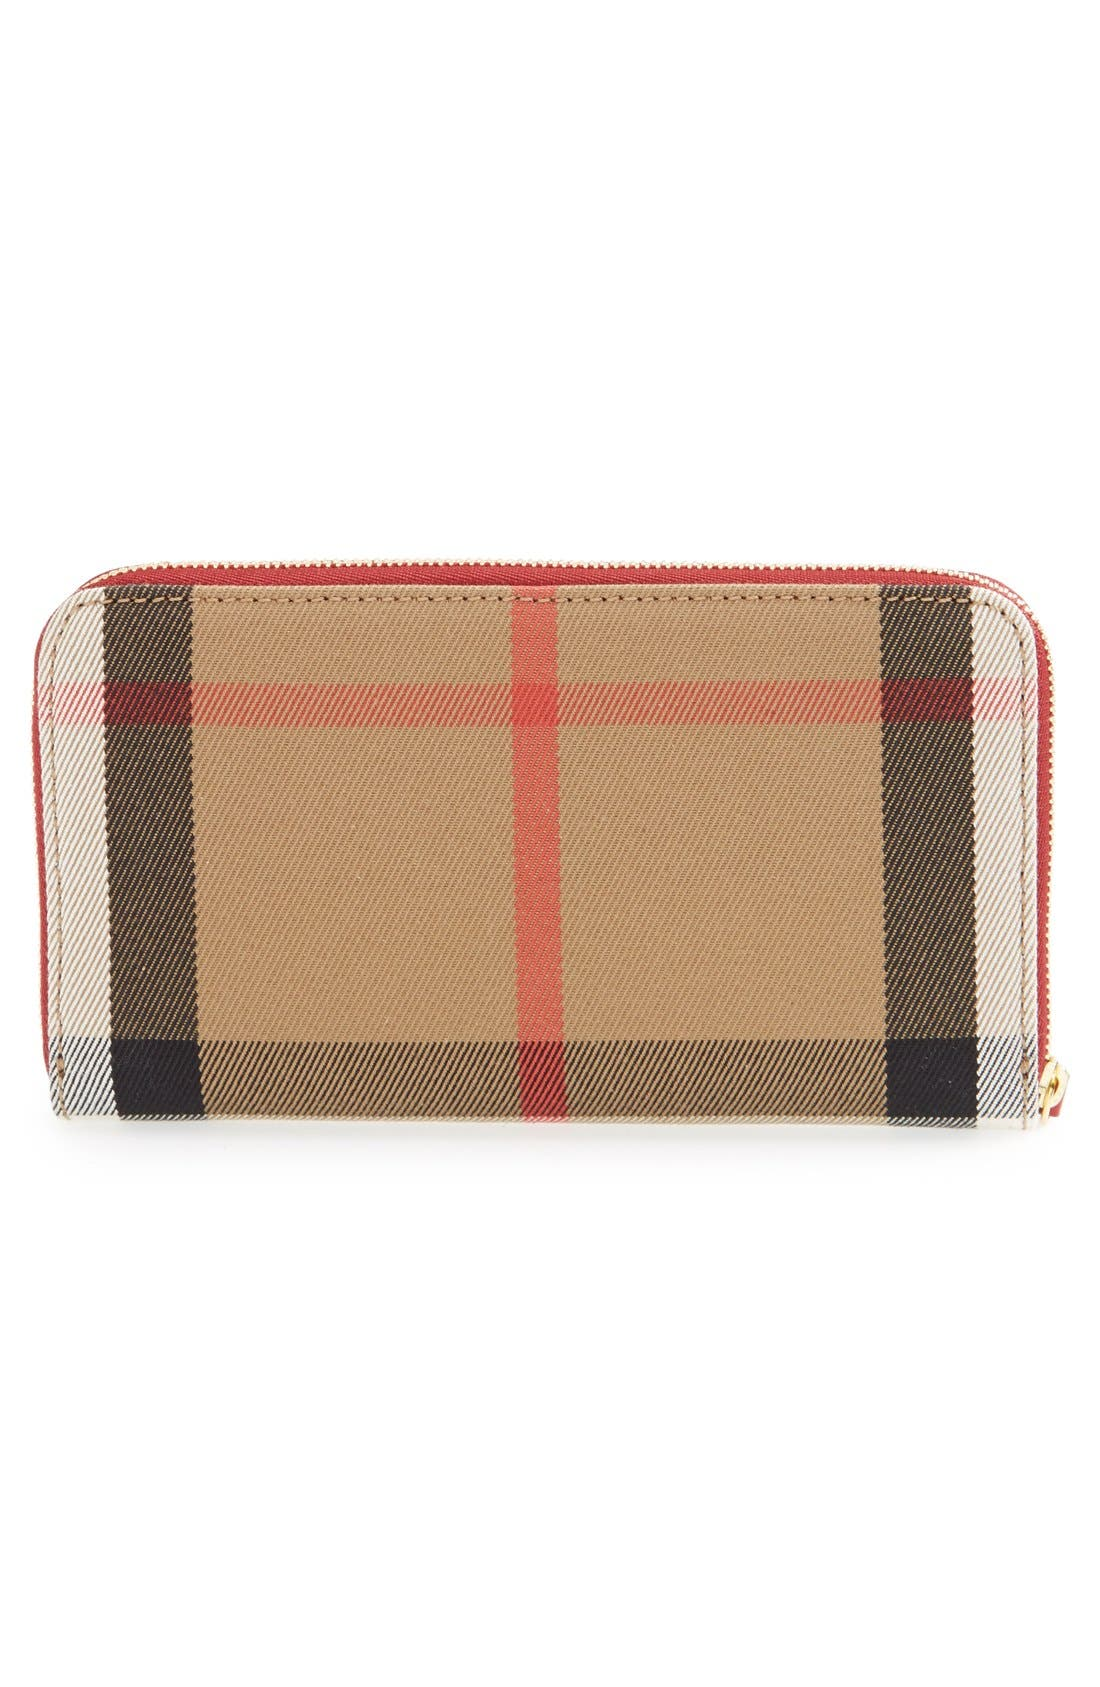 'Elmore' House Check & Leather Zip Around Wallet,                             Alternate thumbnail 2, color,                             600